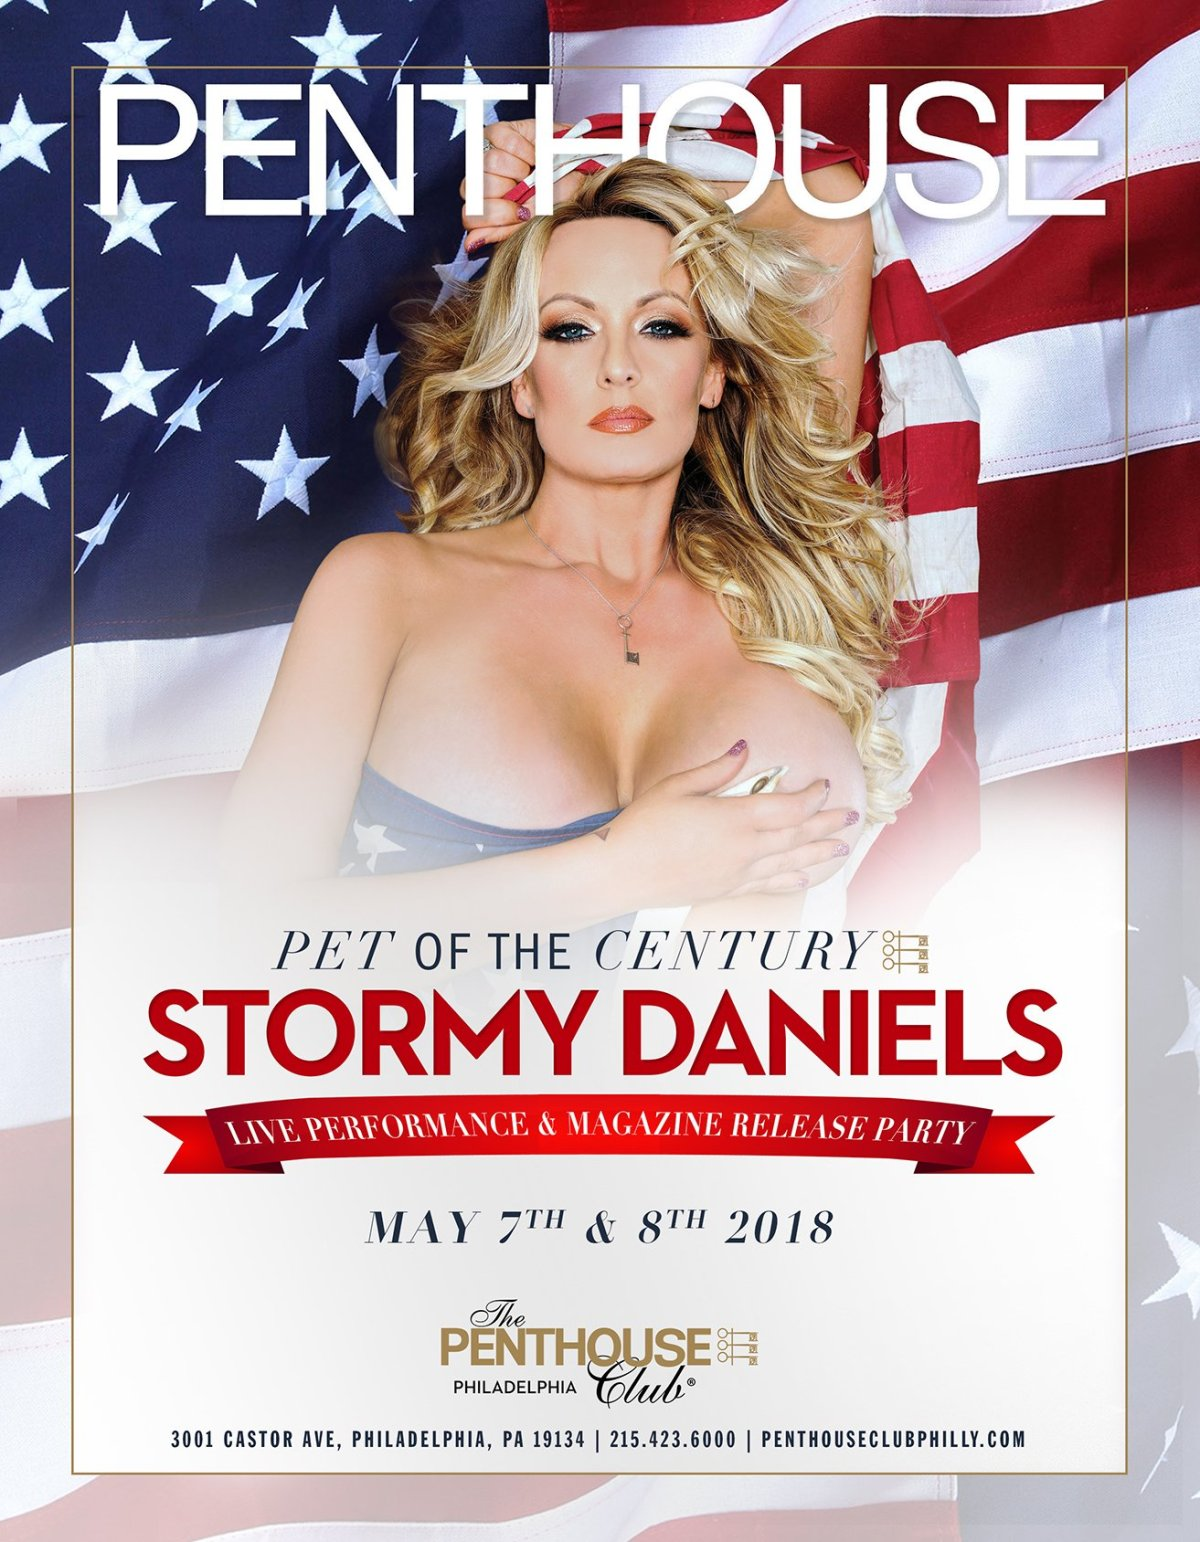 "Penthouse Proclaims Stormy Daniels their ""Pet of the Century"" 51 Years Prematurely!"